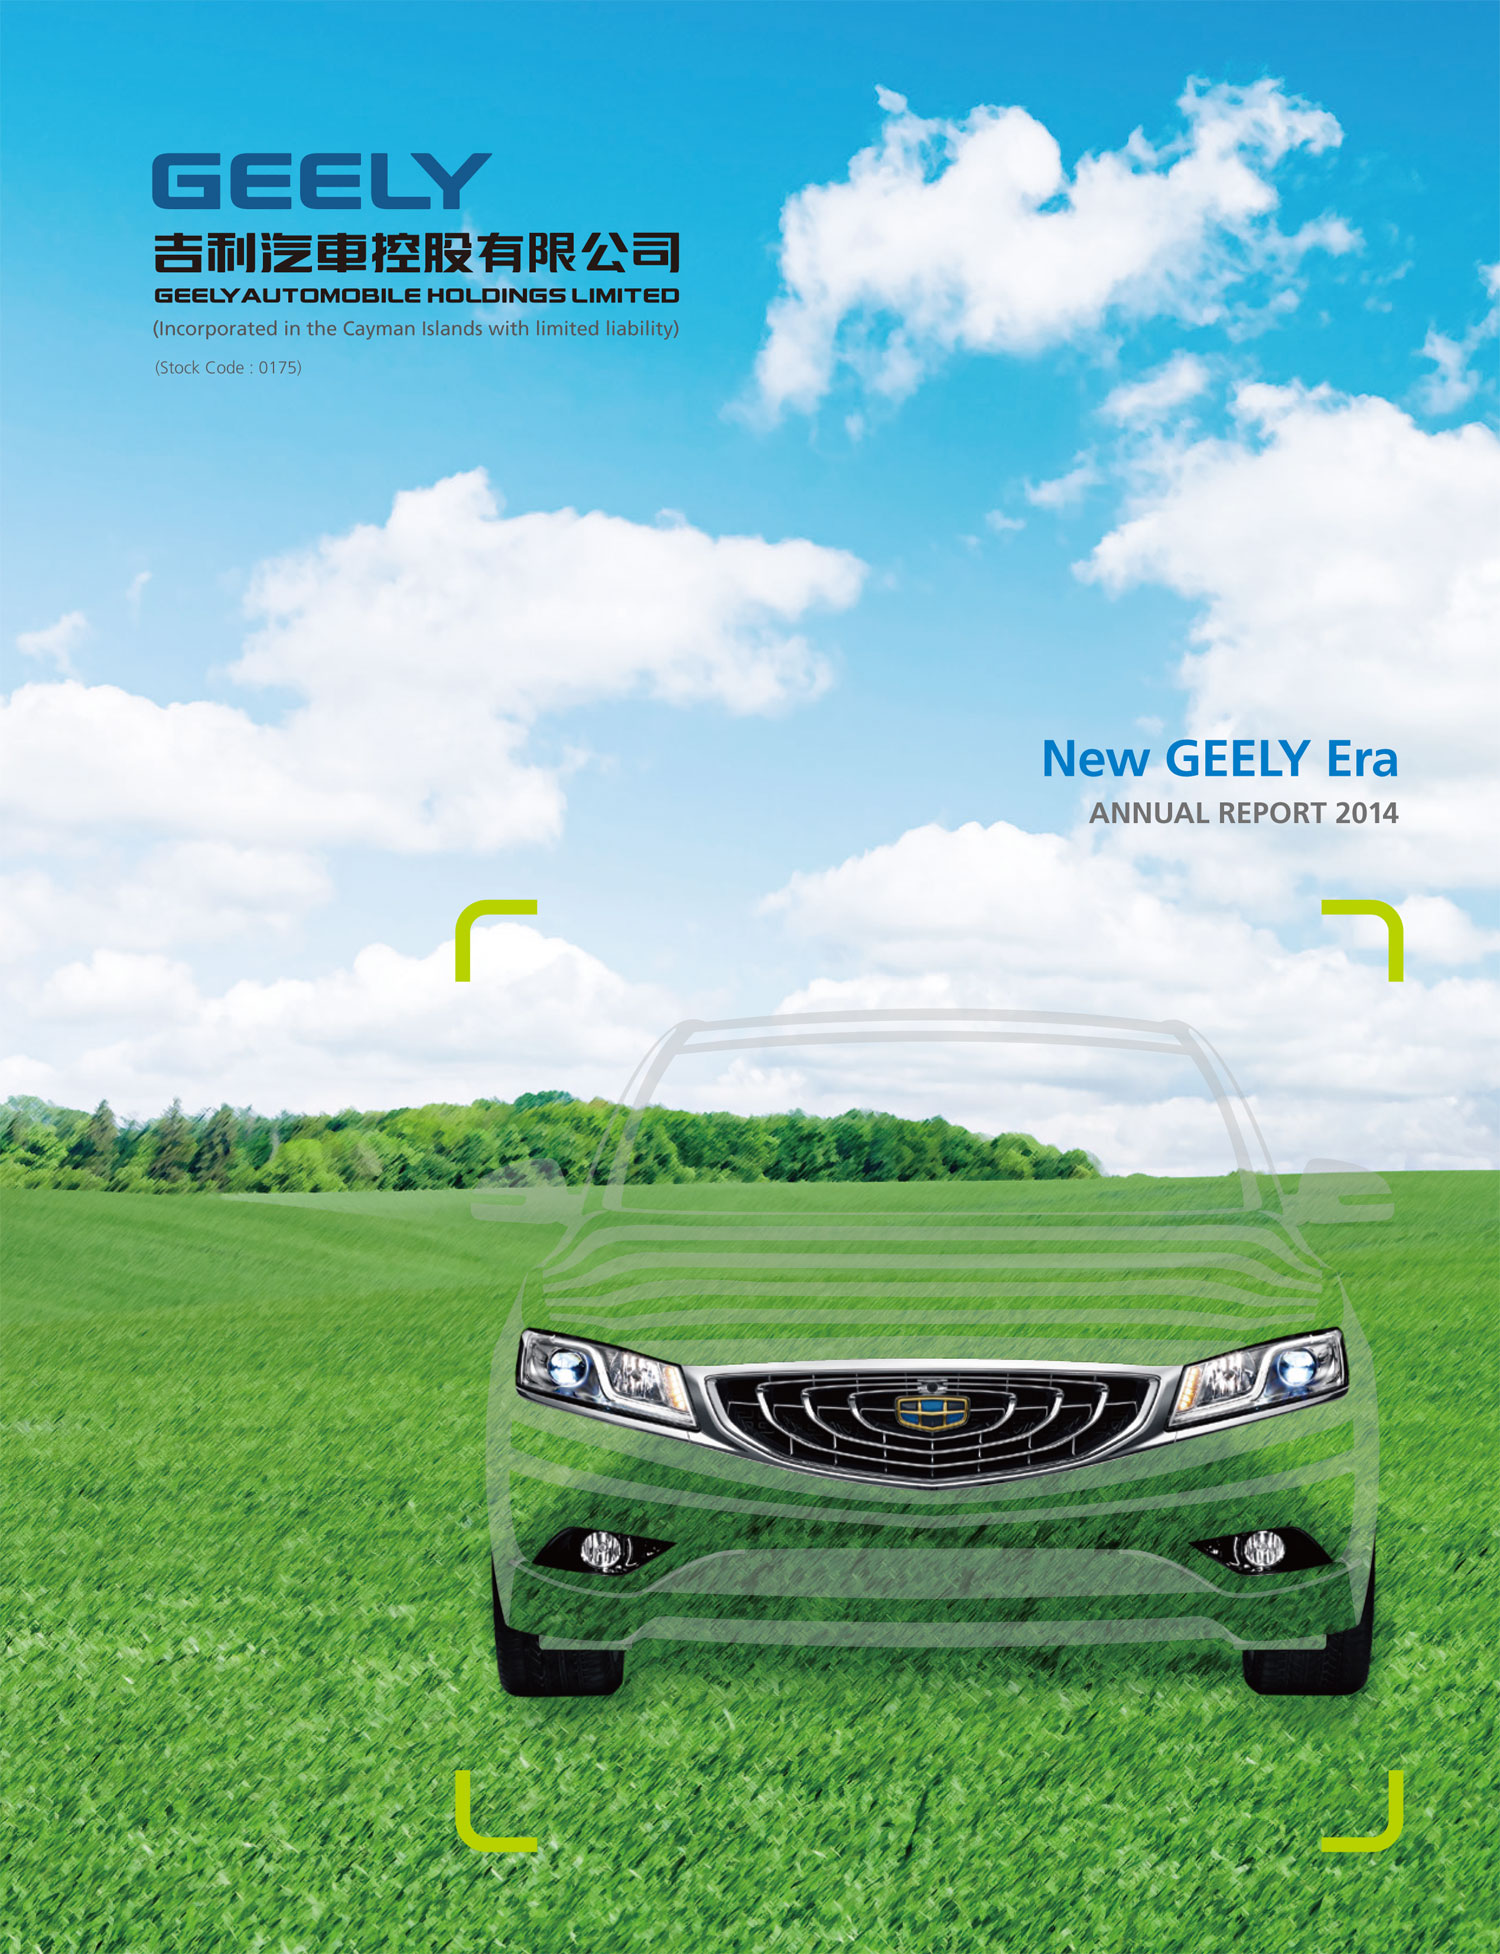 geely automobile holdings ltd 0175 Find out the latest news headlines for geely auto (0175hk) home brief-geely automobile holdings says march (reuters) - geely automobile holdings ltd.